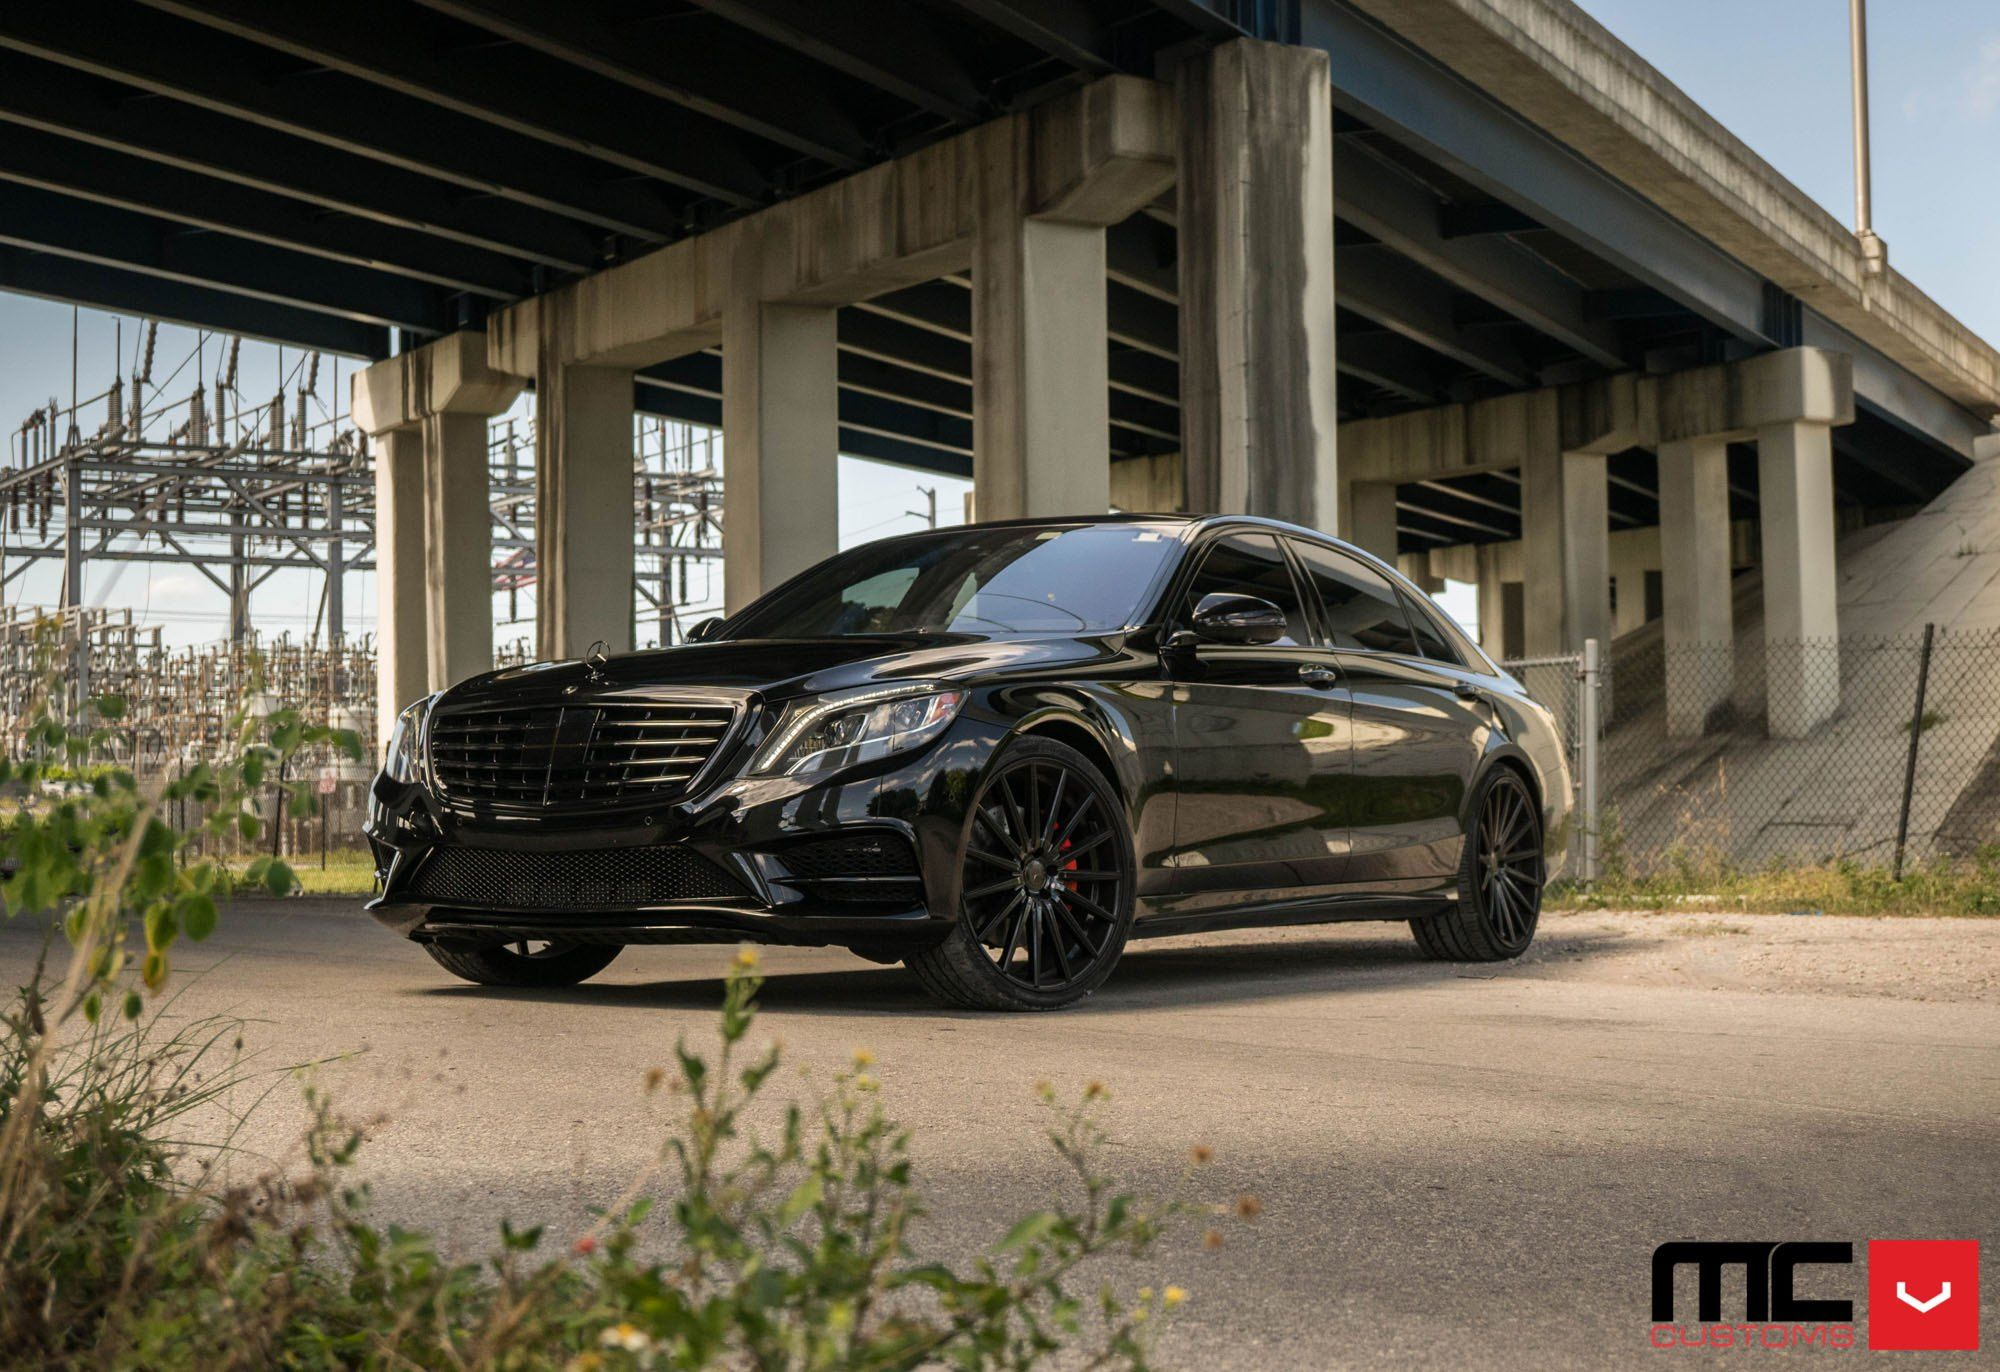 Graceful Custom Blacked Out Mercedes S Class Mercedes S Class S Class Mercedes